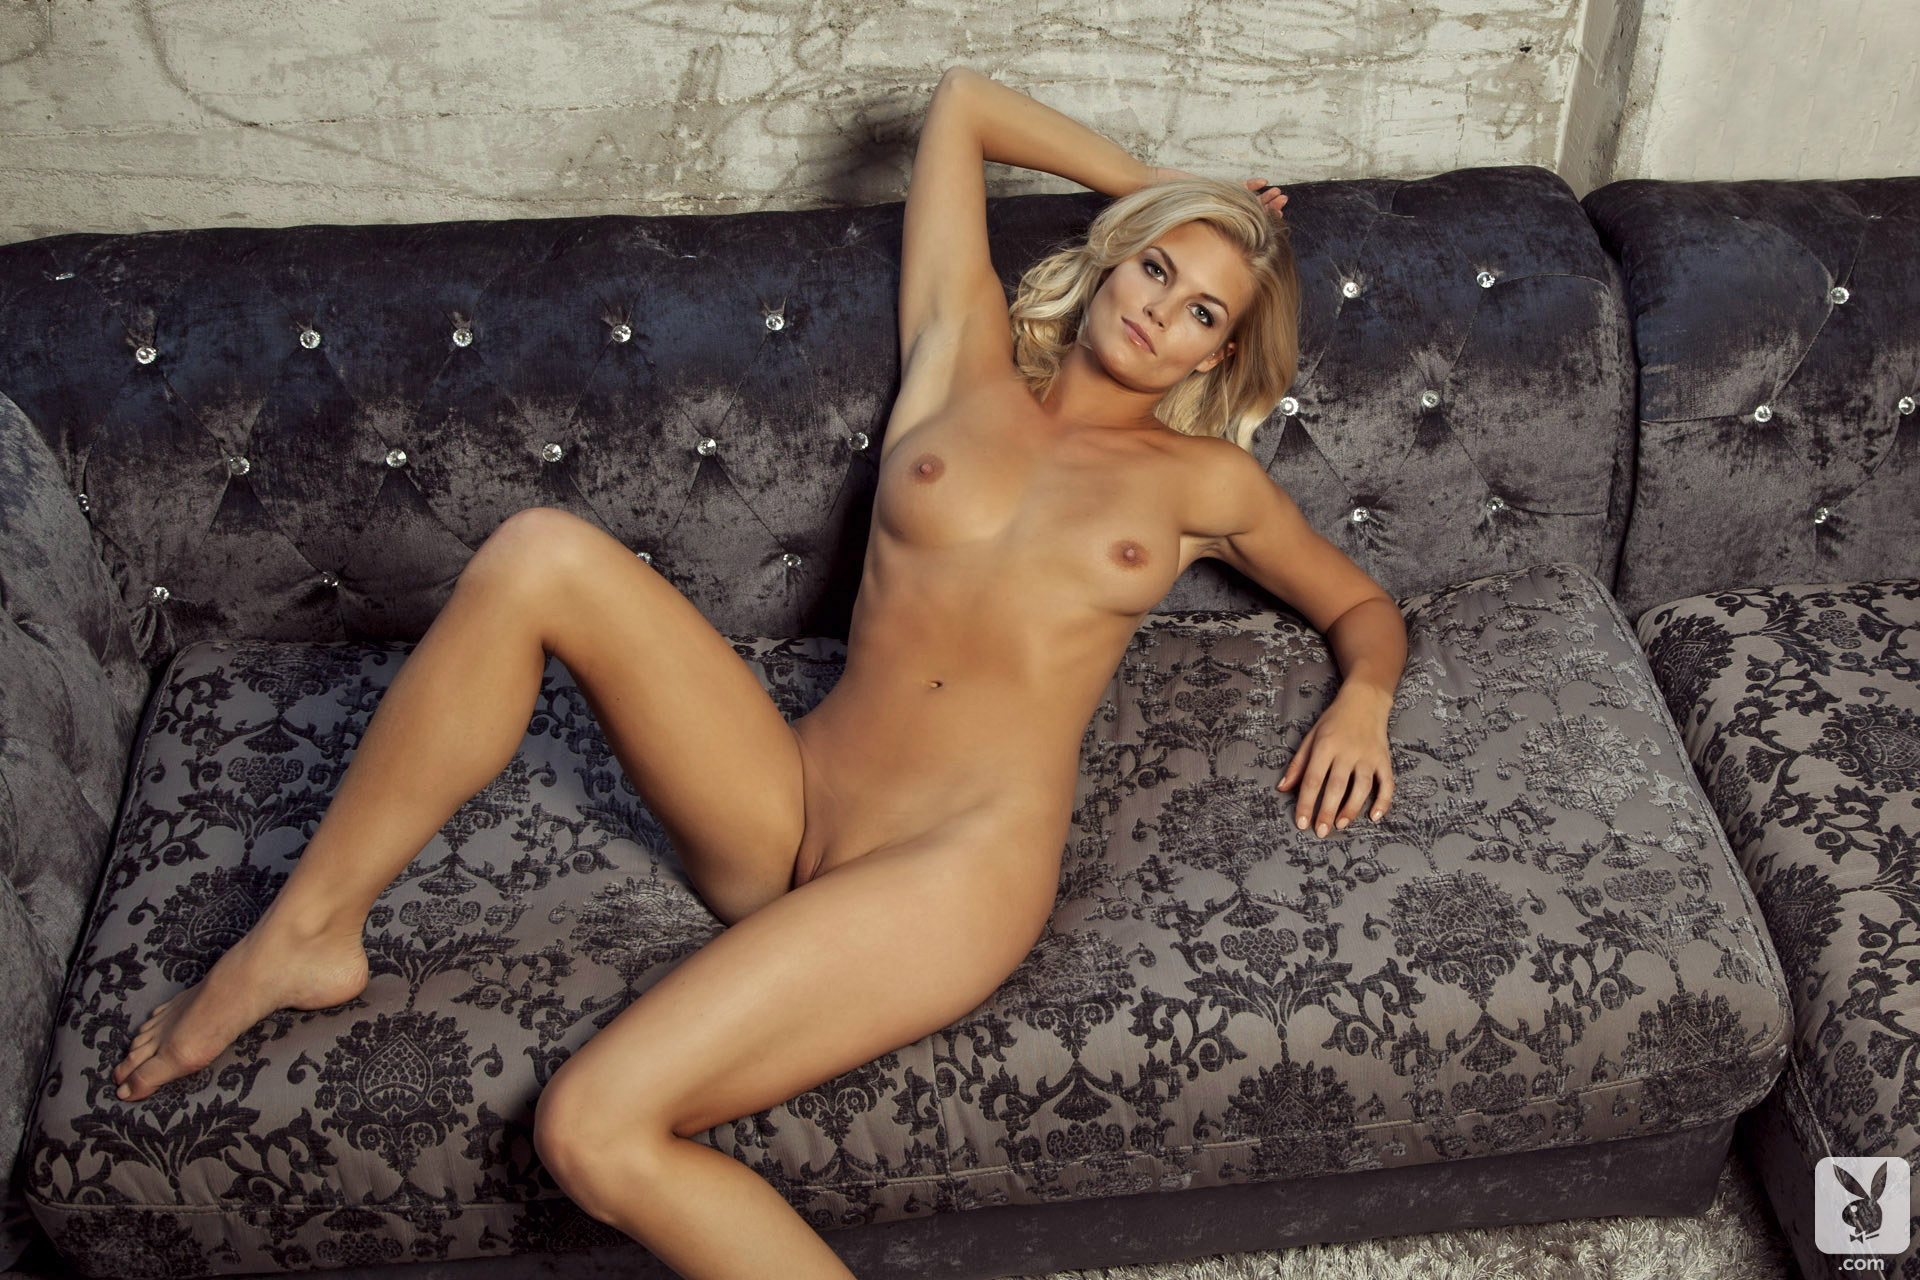 Playboy amateur video host freesexi girl